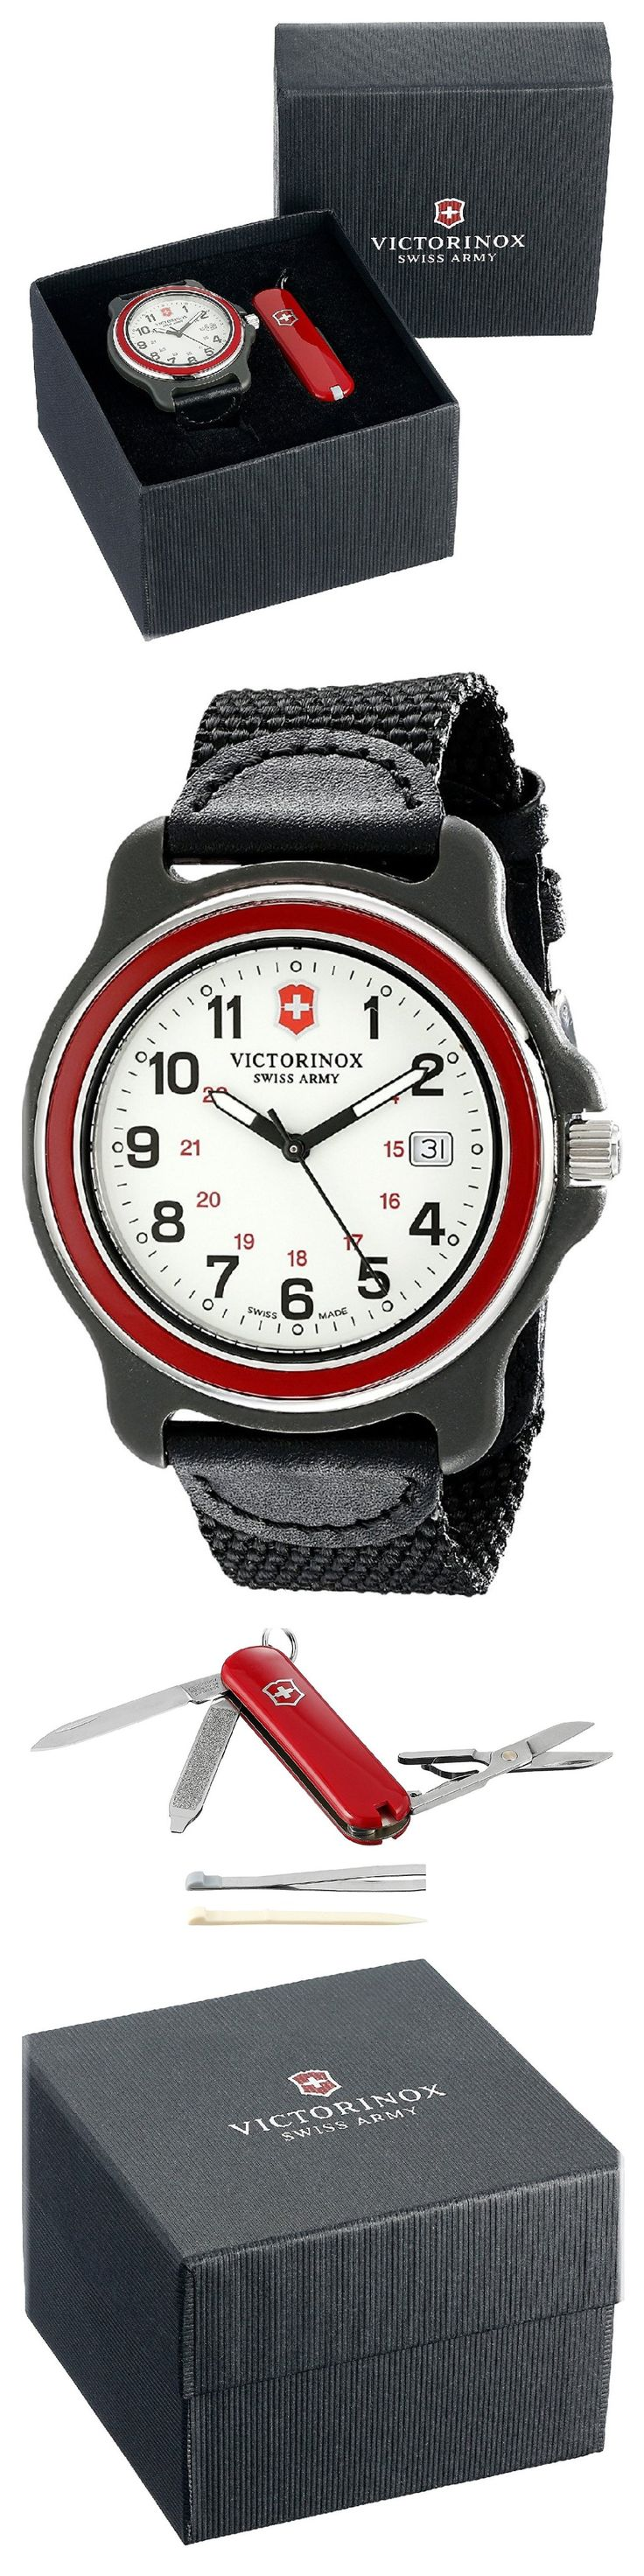 Get ready for adventure: Victorinox Watch with Army Knife. Victorinox Swiss Army constantly enhances its timepiece lines with new design elements and innovative functions while seeking creative ways of upgrading existing components to enhance their capabilities. #Victorinox #KhaValeri  www.pinterest.com/KhaValeri/     kha_amz_VICkni1701_v7